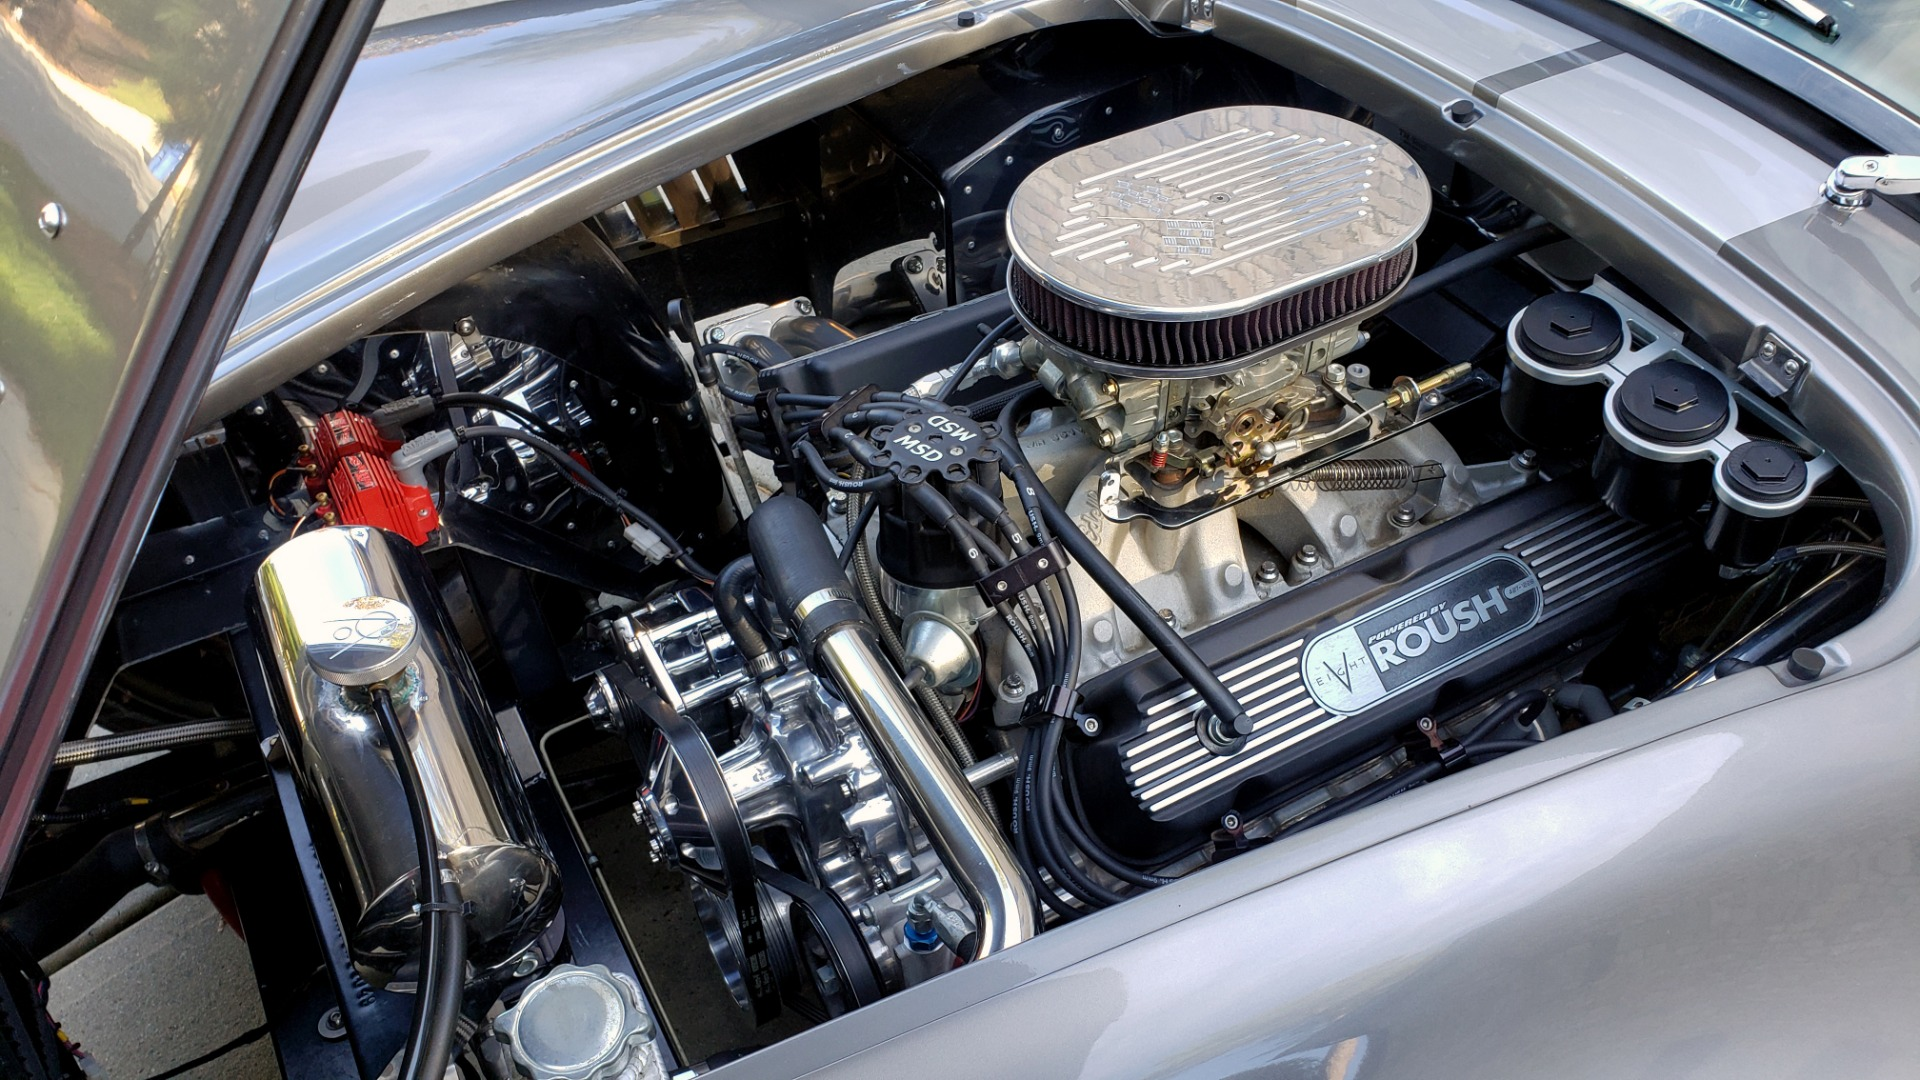 Used 1965 Ford COBRA 427 ROADSTER BY BRACKDRAFT RACING ROUSH 553HP V8 / TREMEC 6-SPD / PWR STRNG for sale $74,999 at Formula Imports in Charlotte NC 28227 38